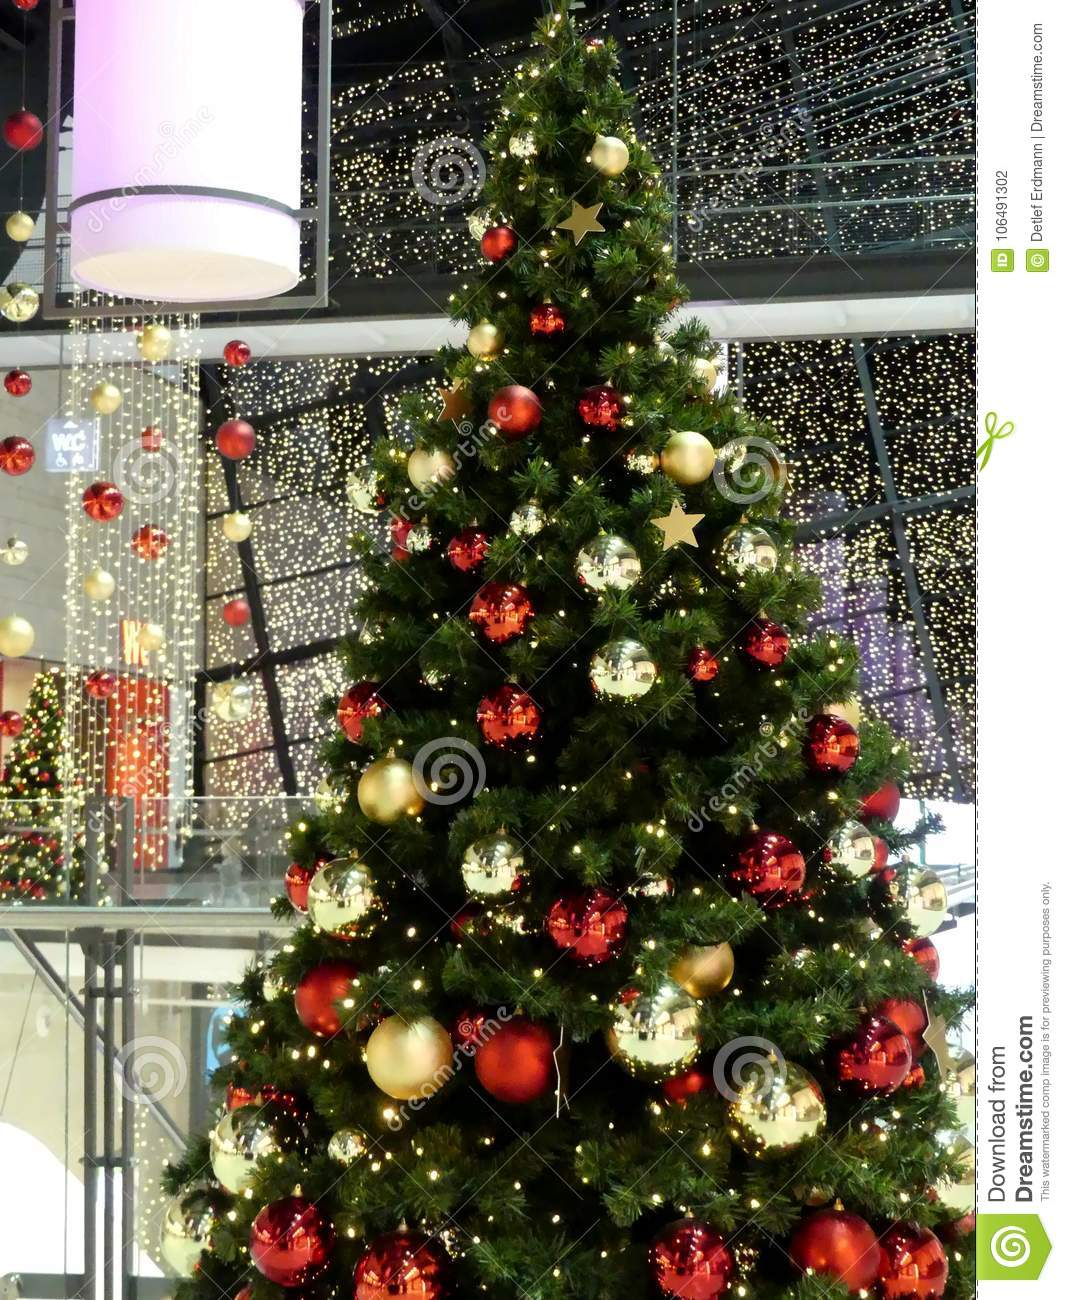 Rostock Shopping Christmas Tree And Christmas Decoration In German Shopping Center